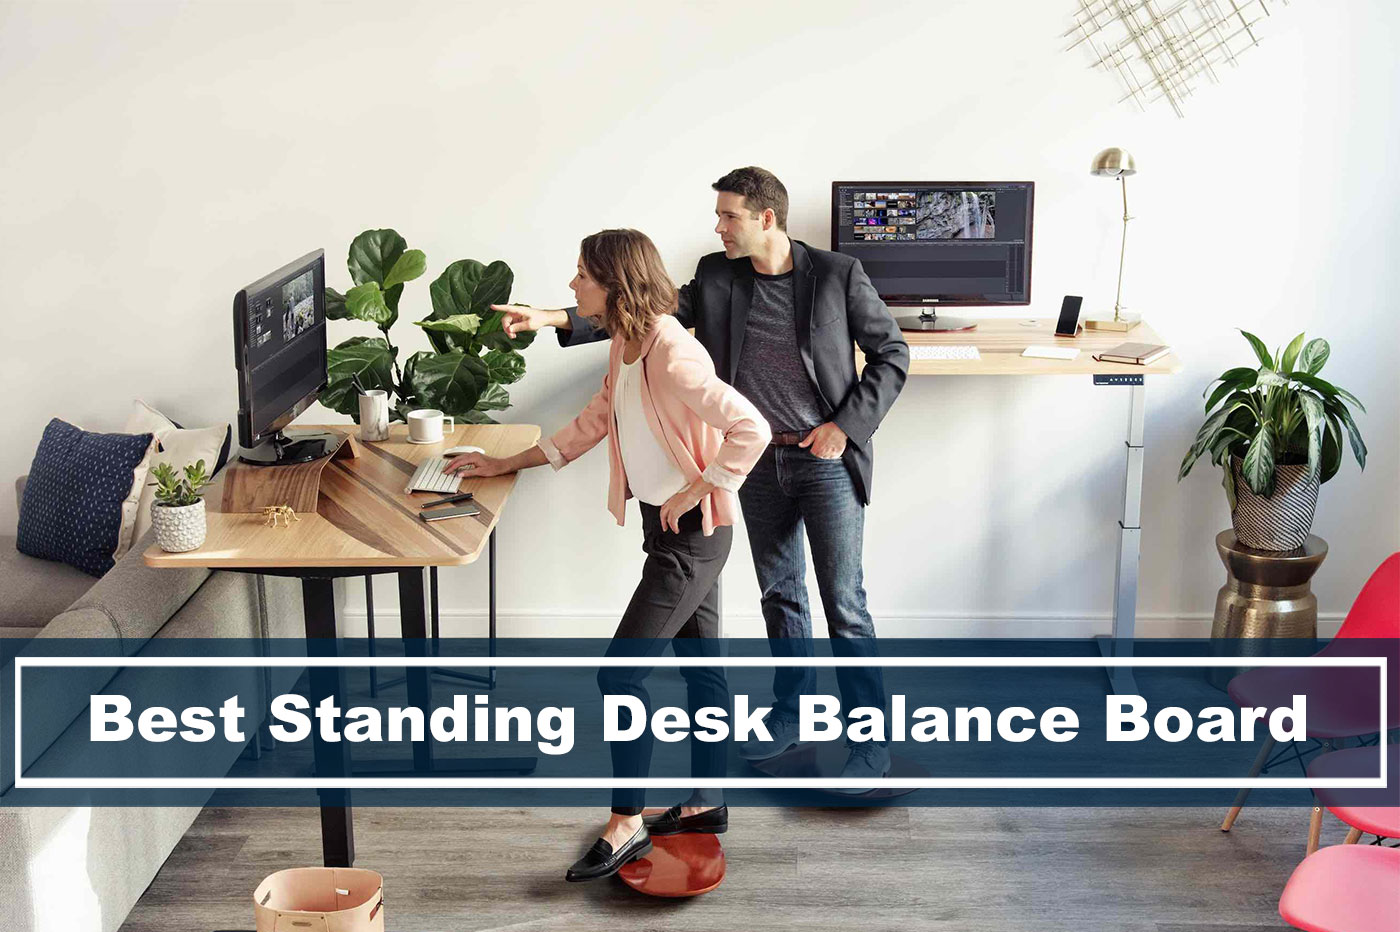 best balance board standing desk featured image